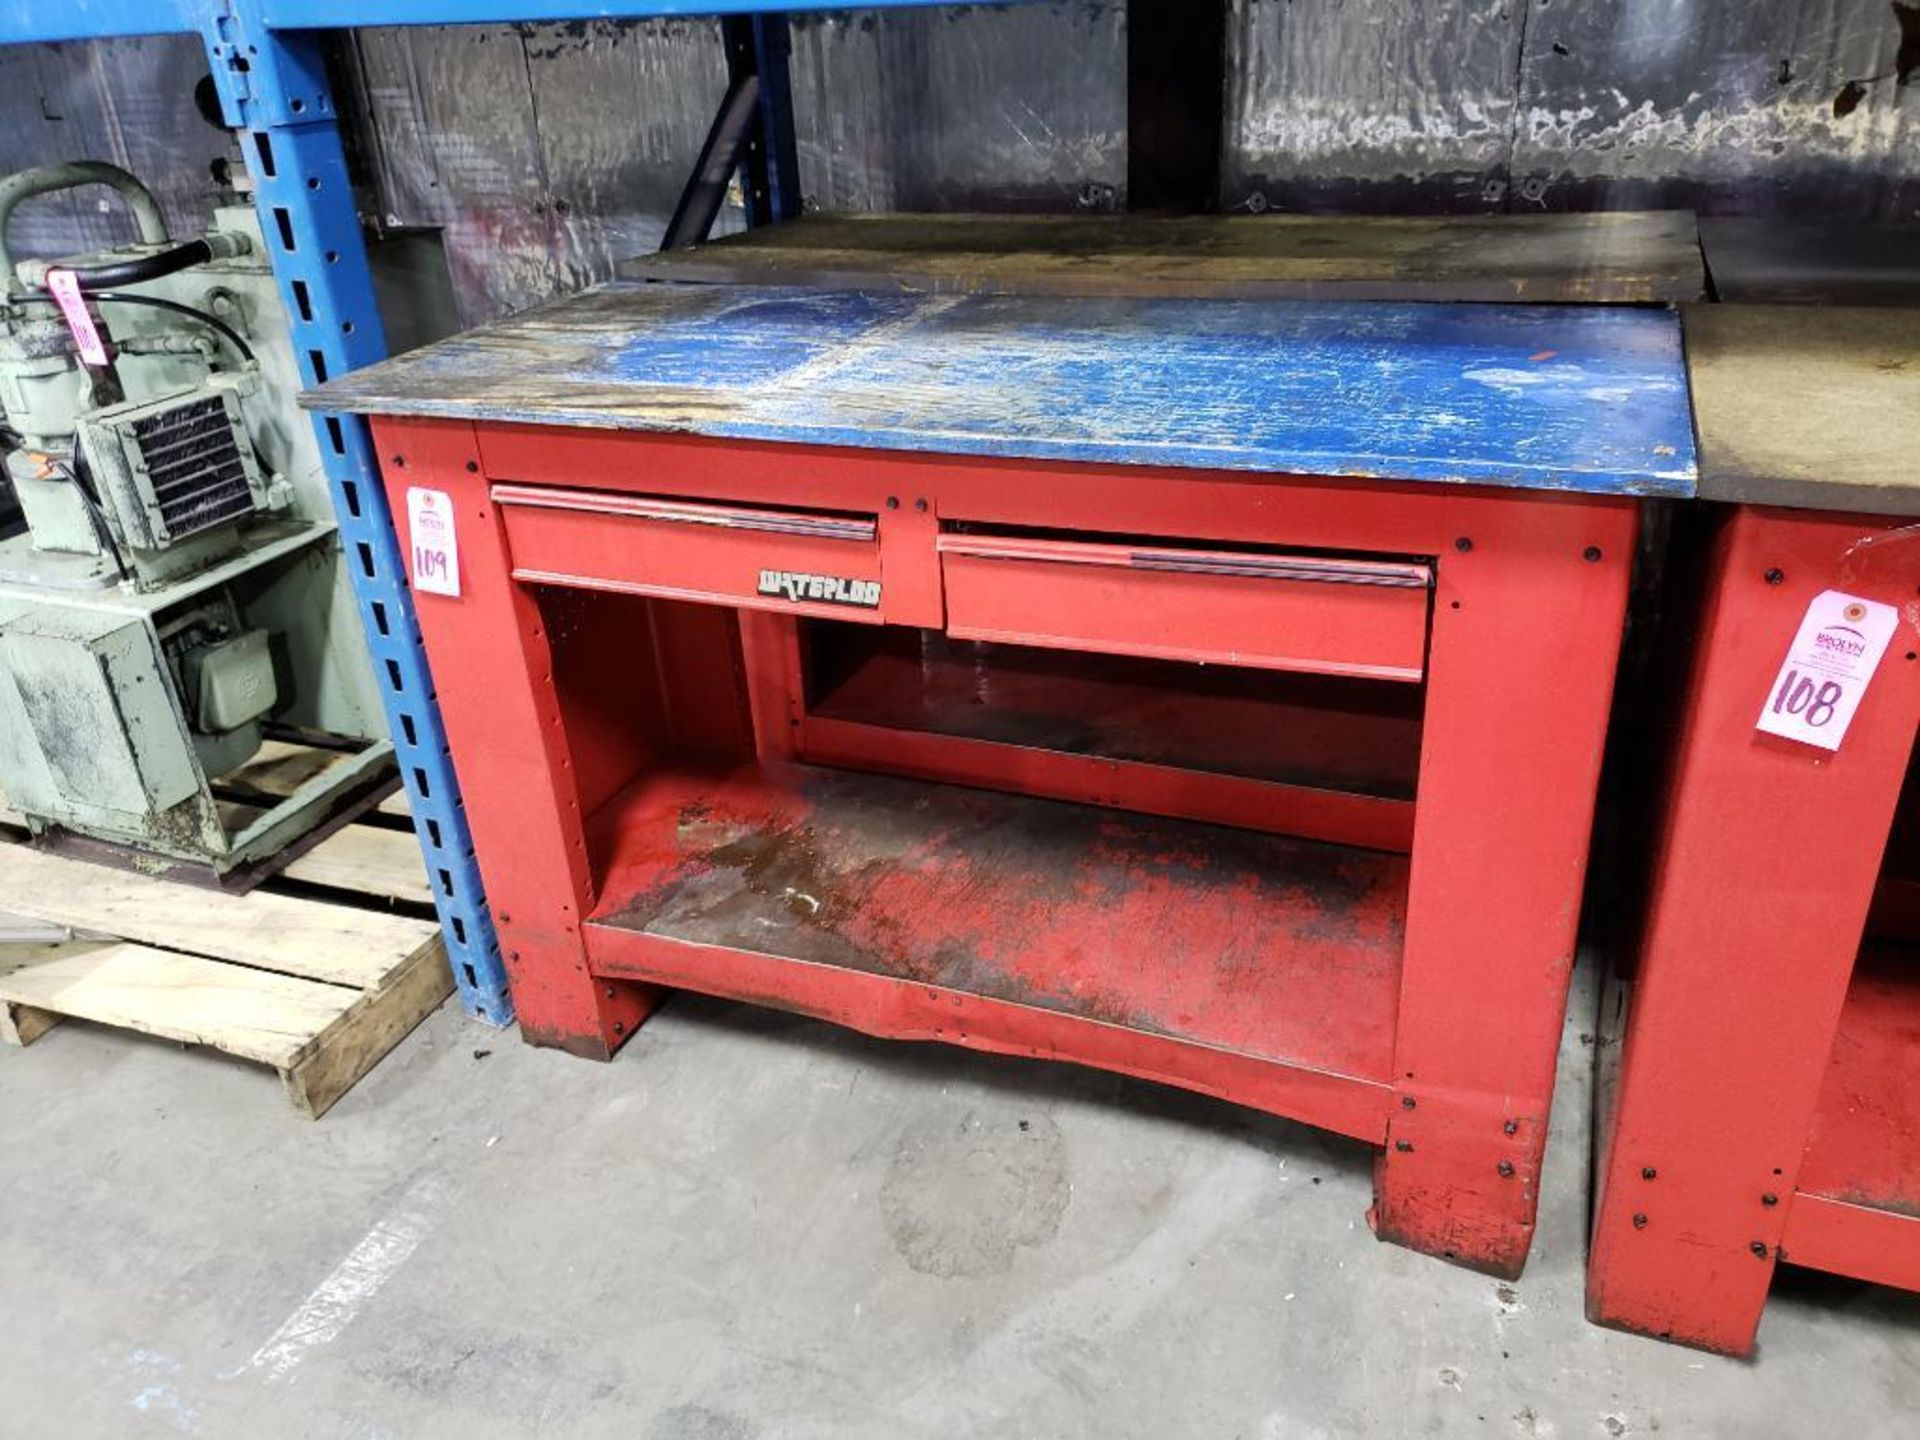 Lot 109 - Qty 2 - Waterloo workbenches.